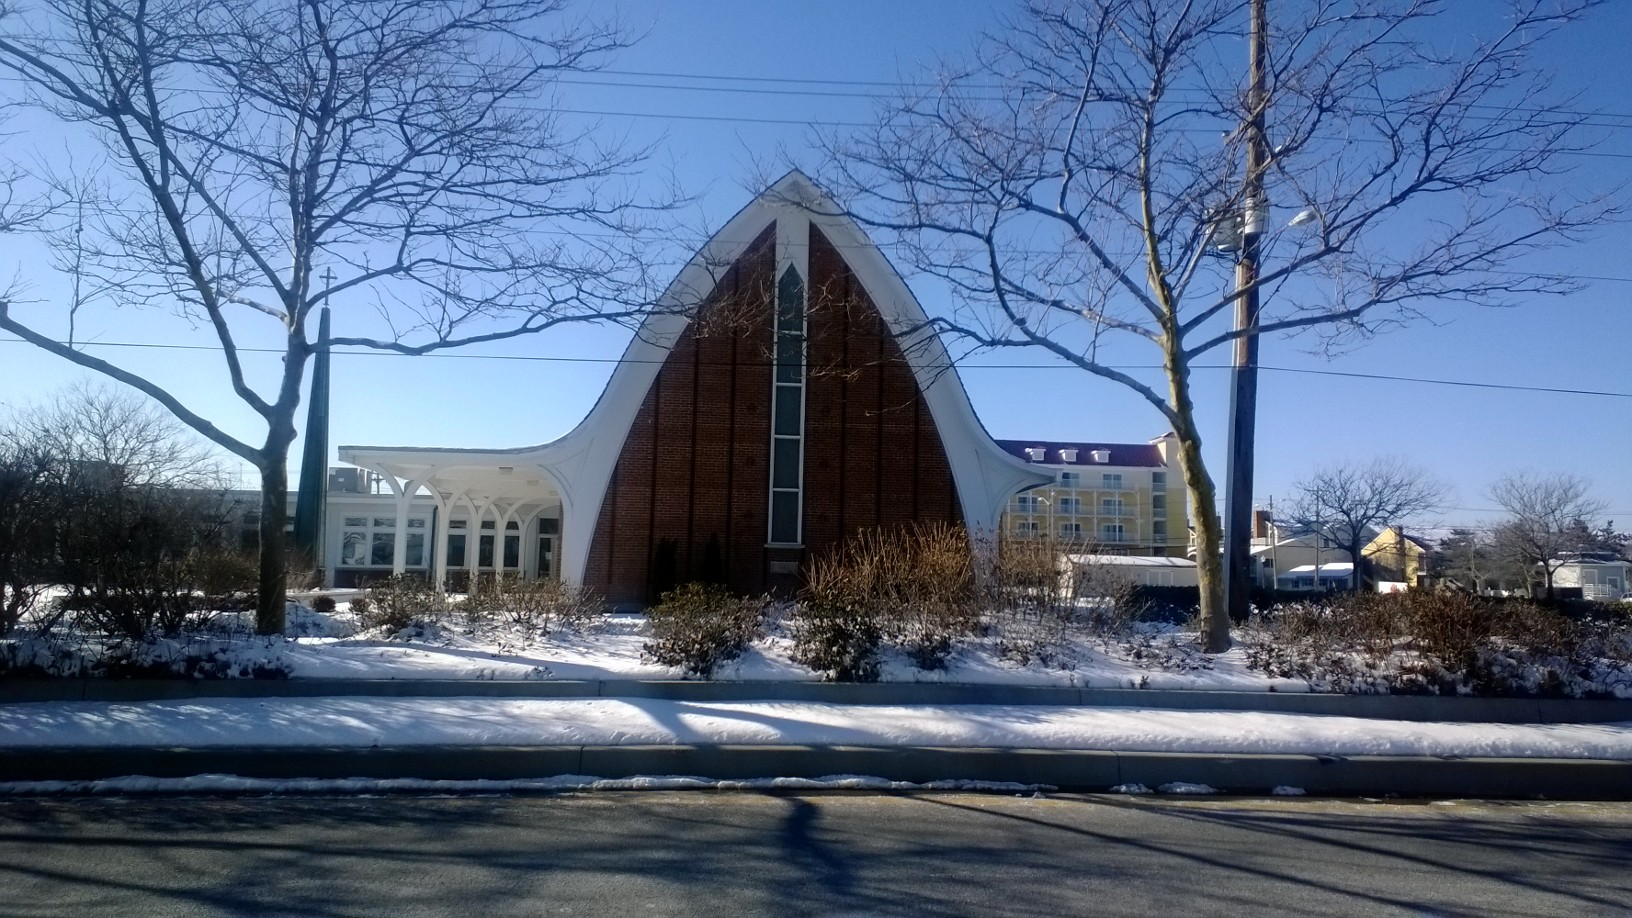 Church in winter with snow